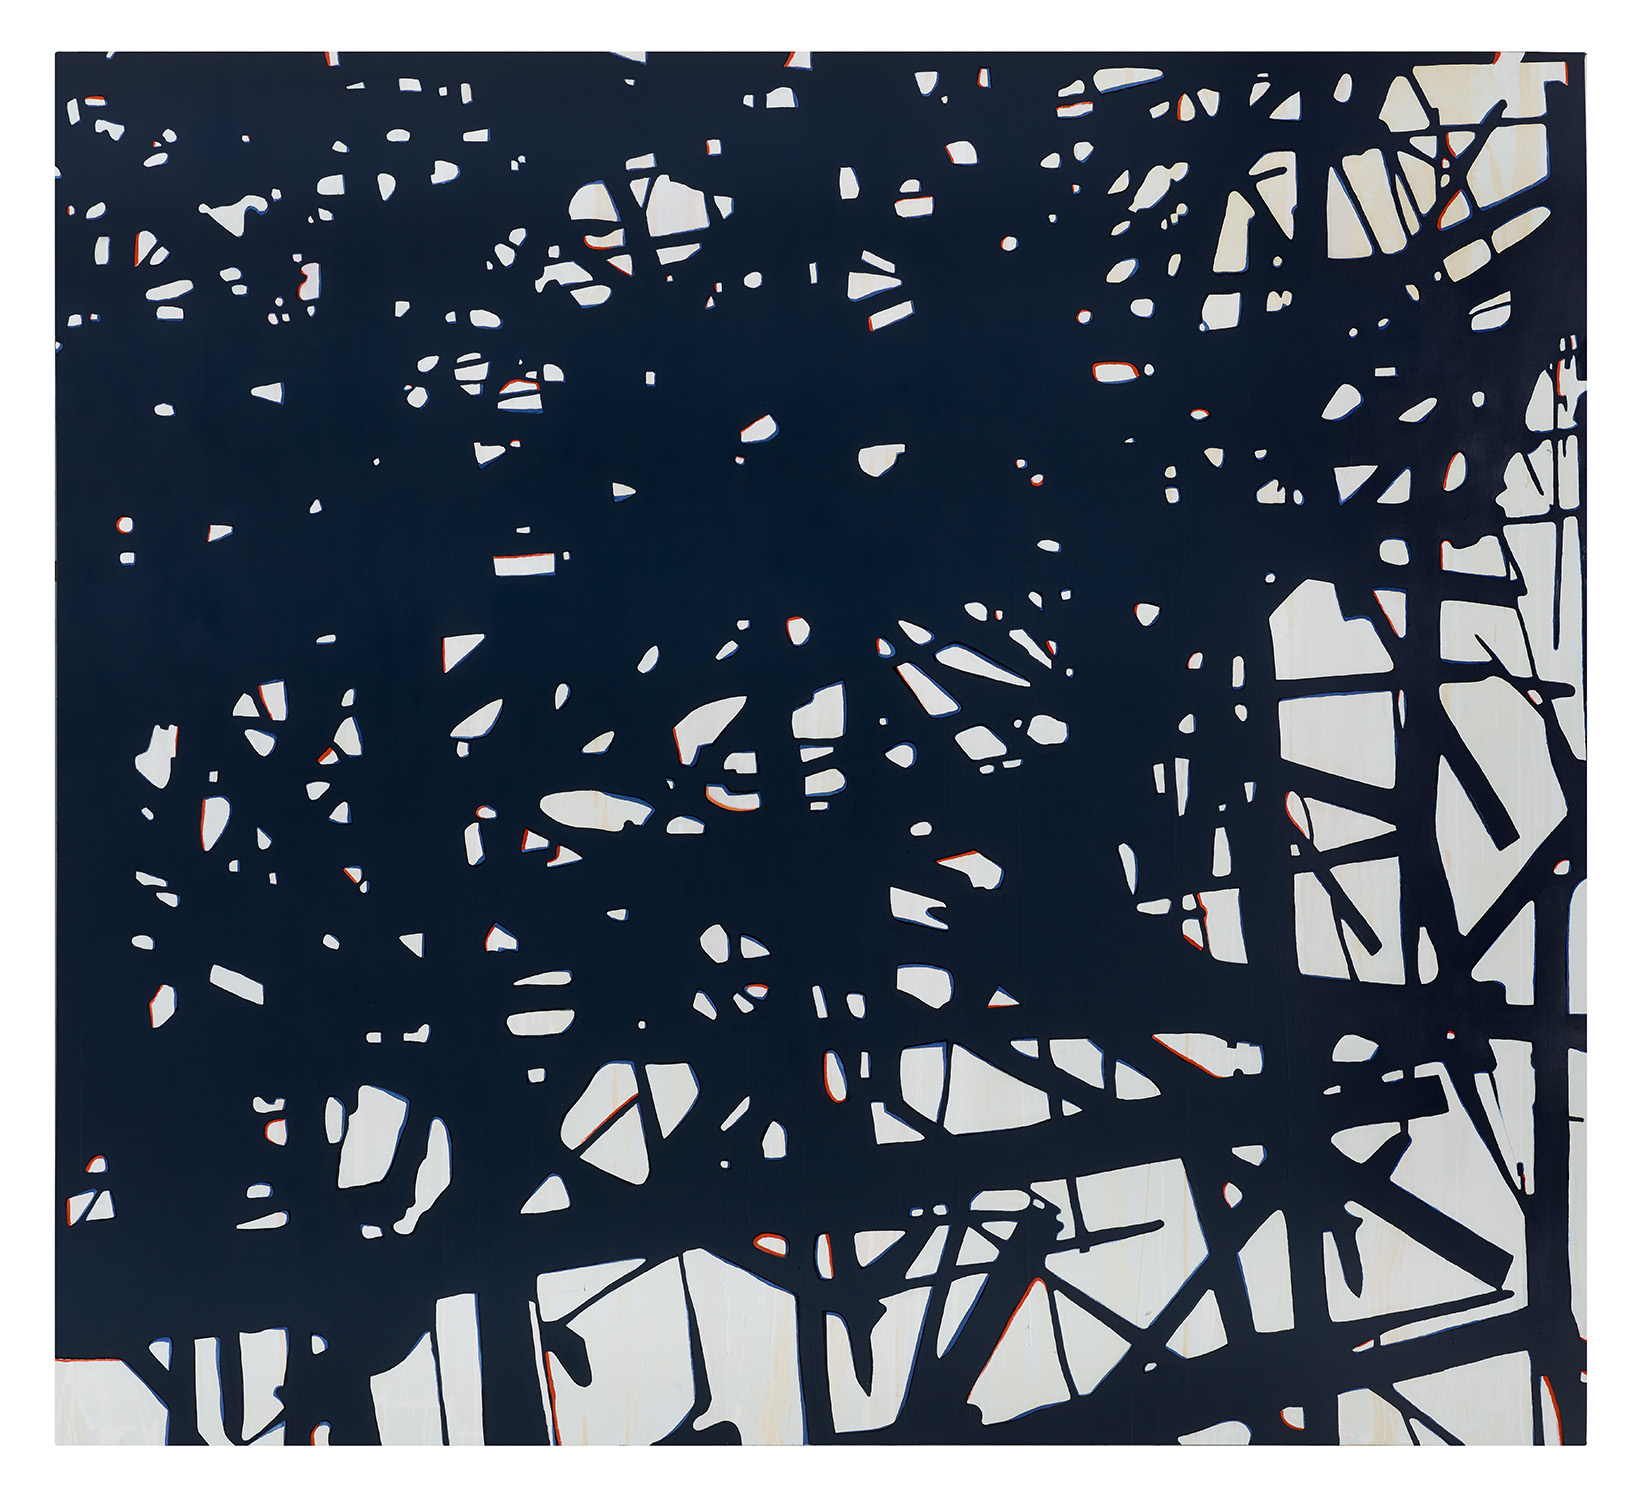 2019- Dark Blue Line Drawing.jpg